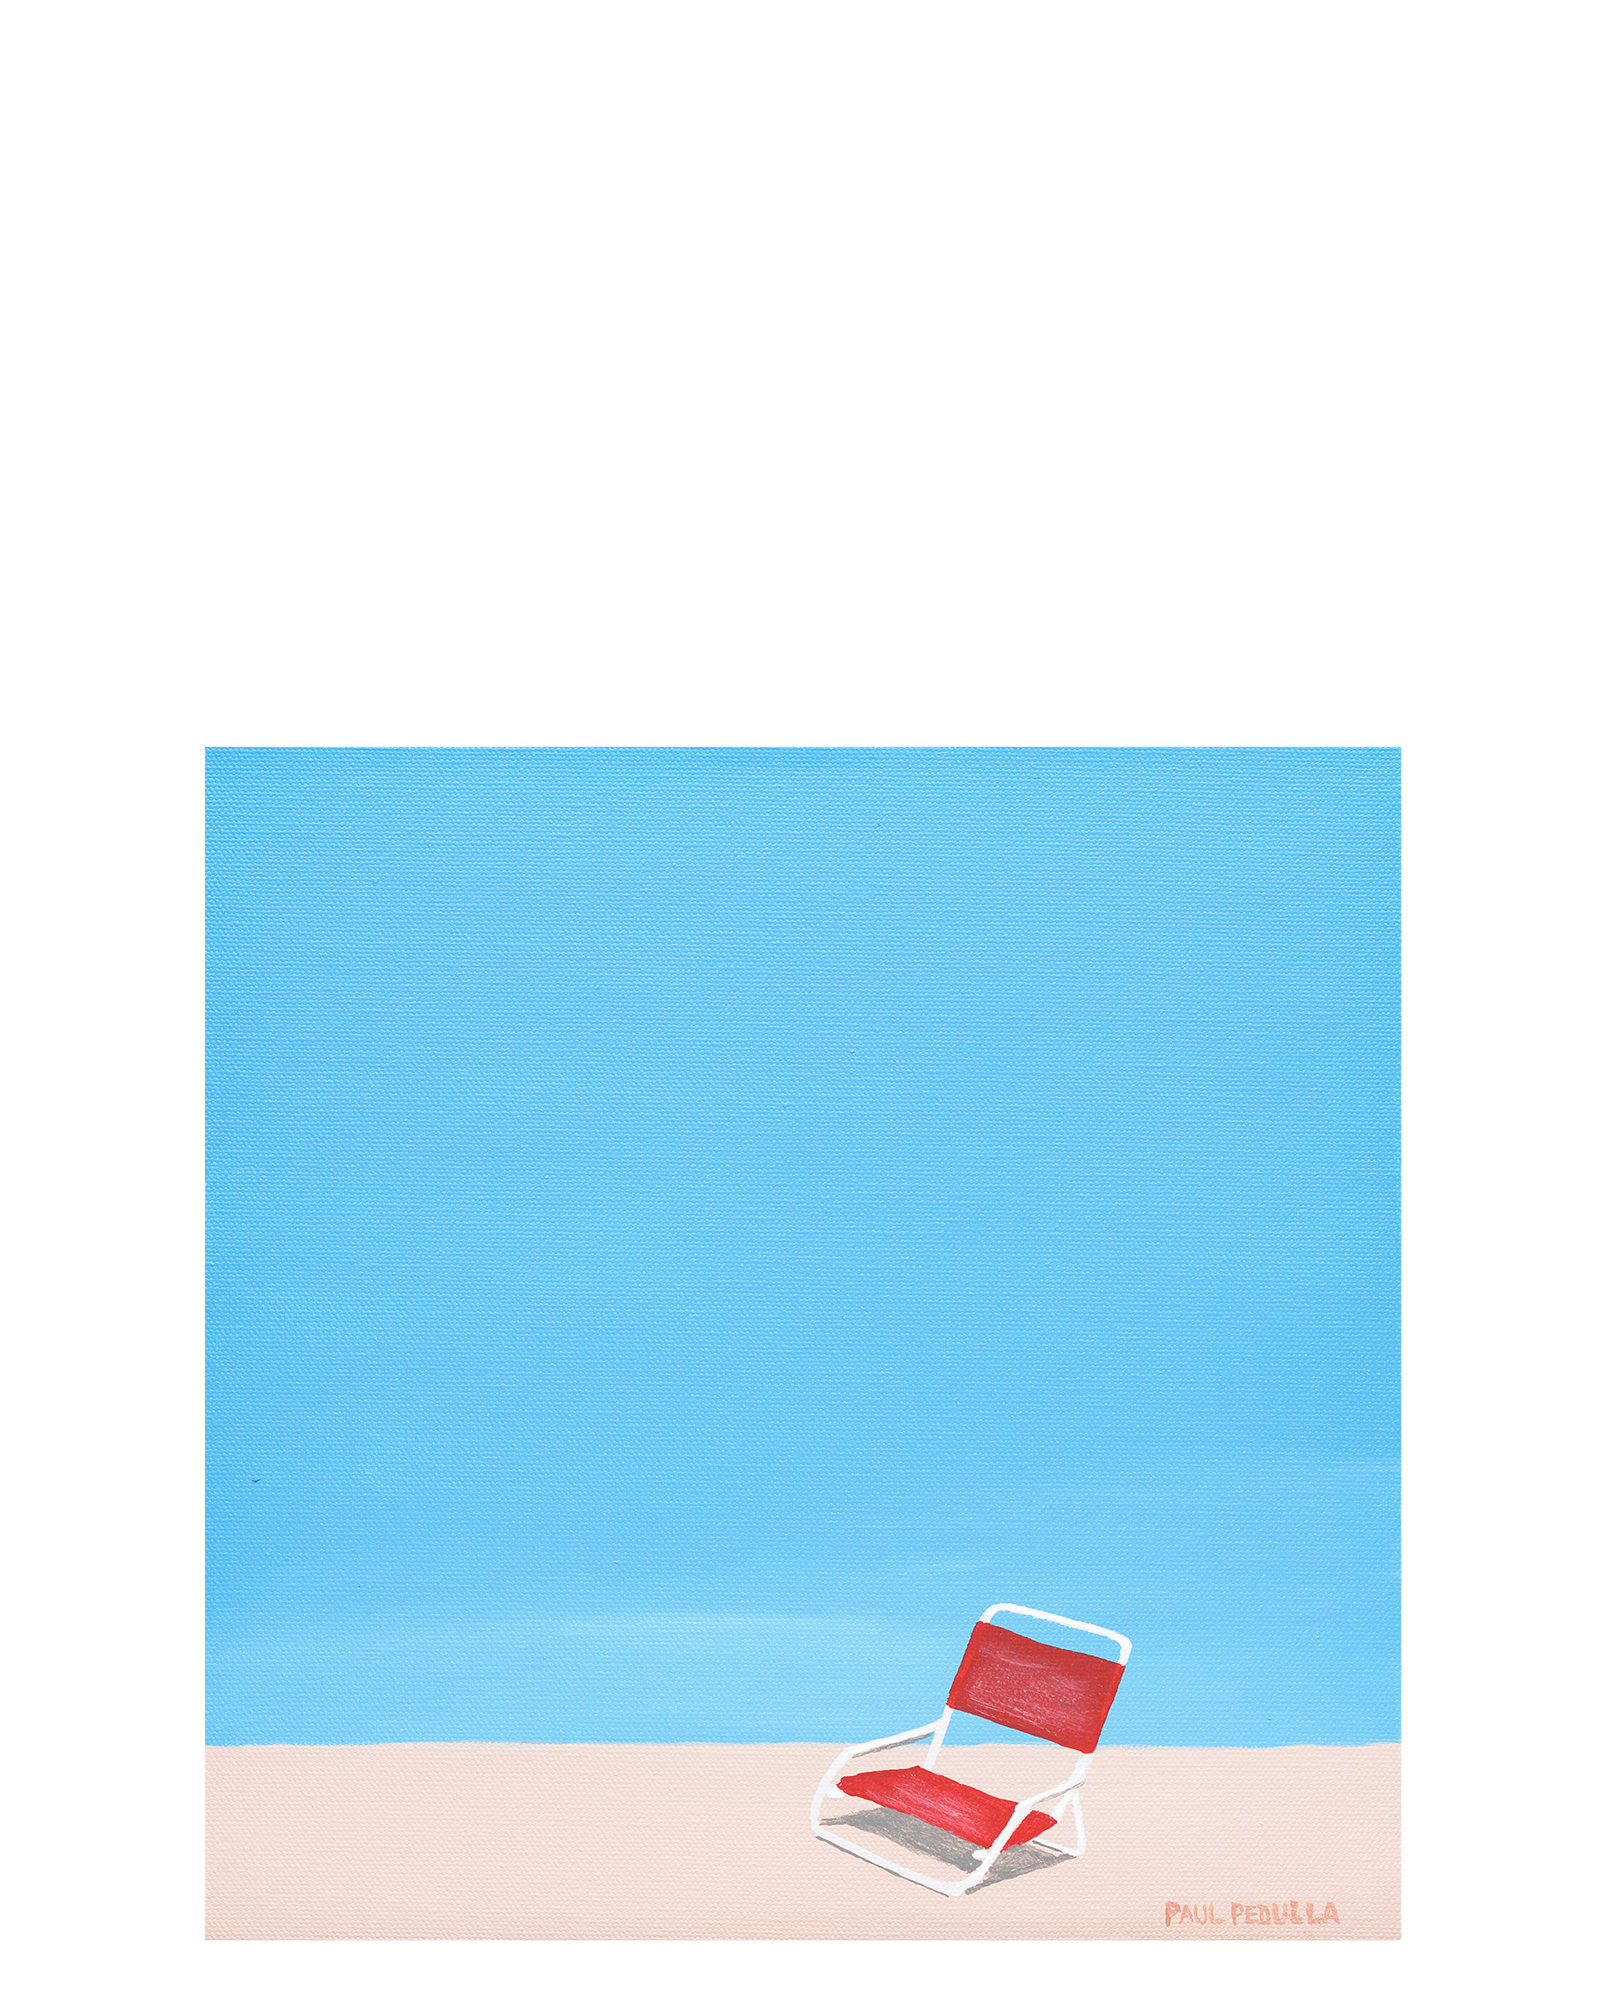 """Red Sand Chair"" by Paul Pedulla,"